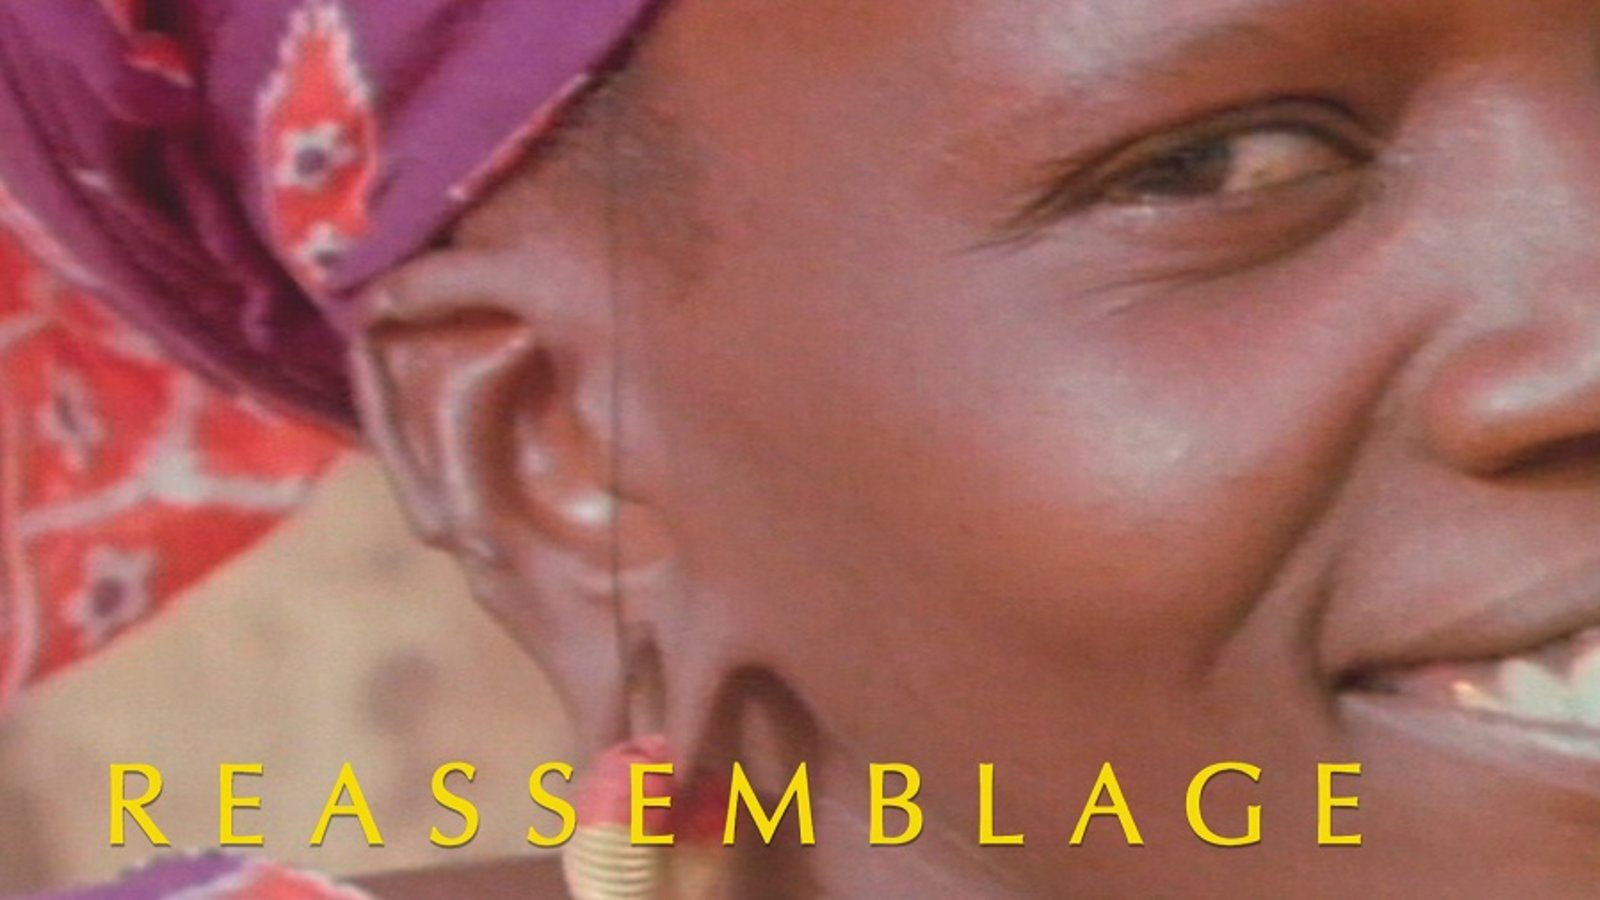 Reassemblage - A Complex Visual Study of the Women of Rural Senegal